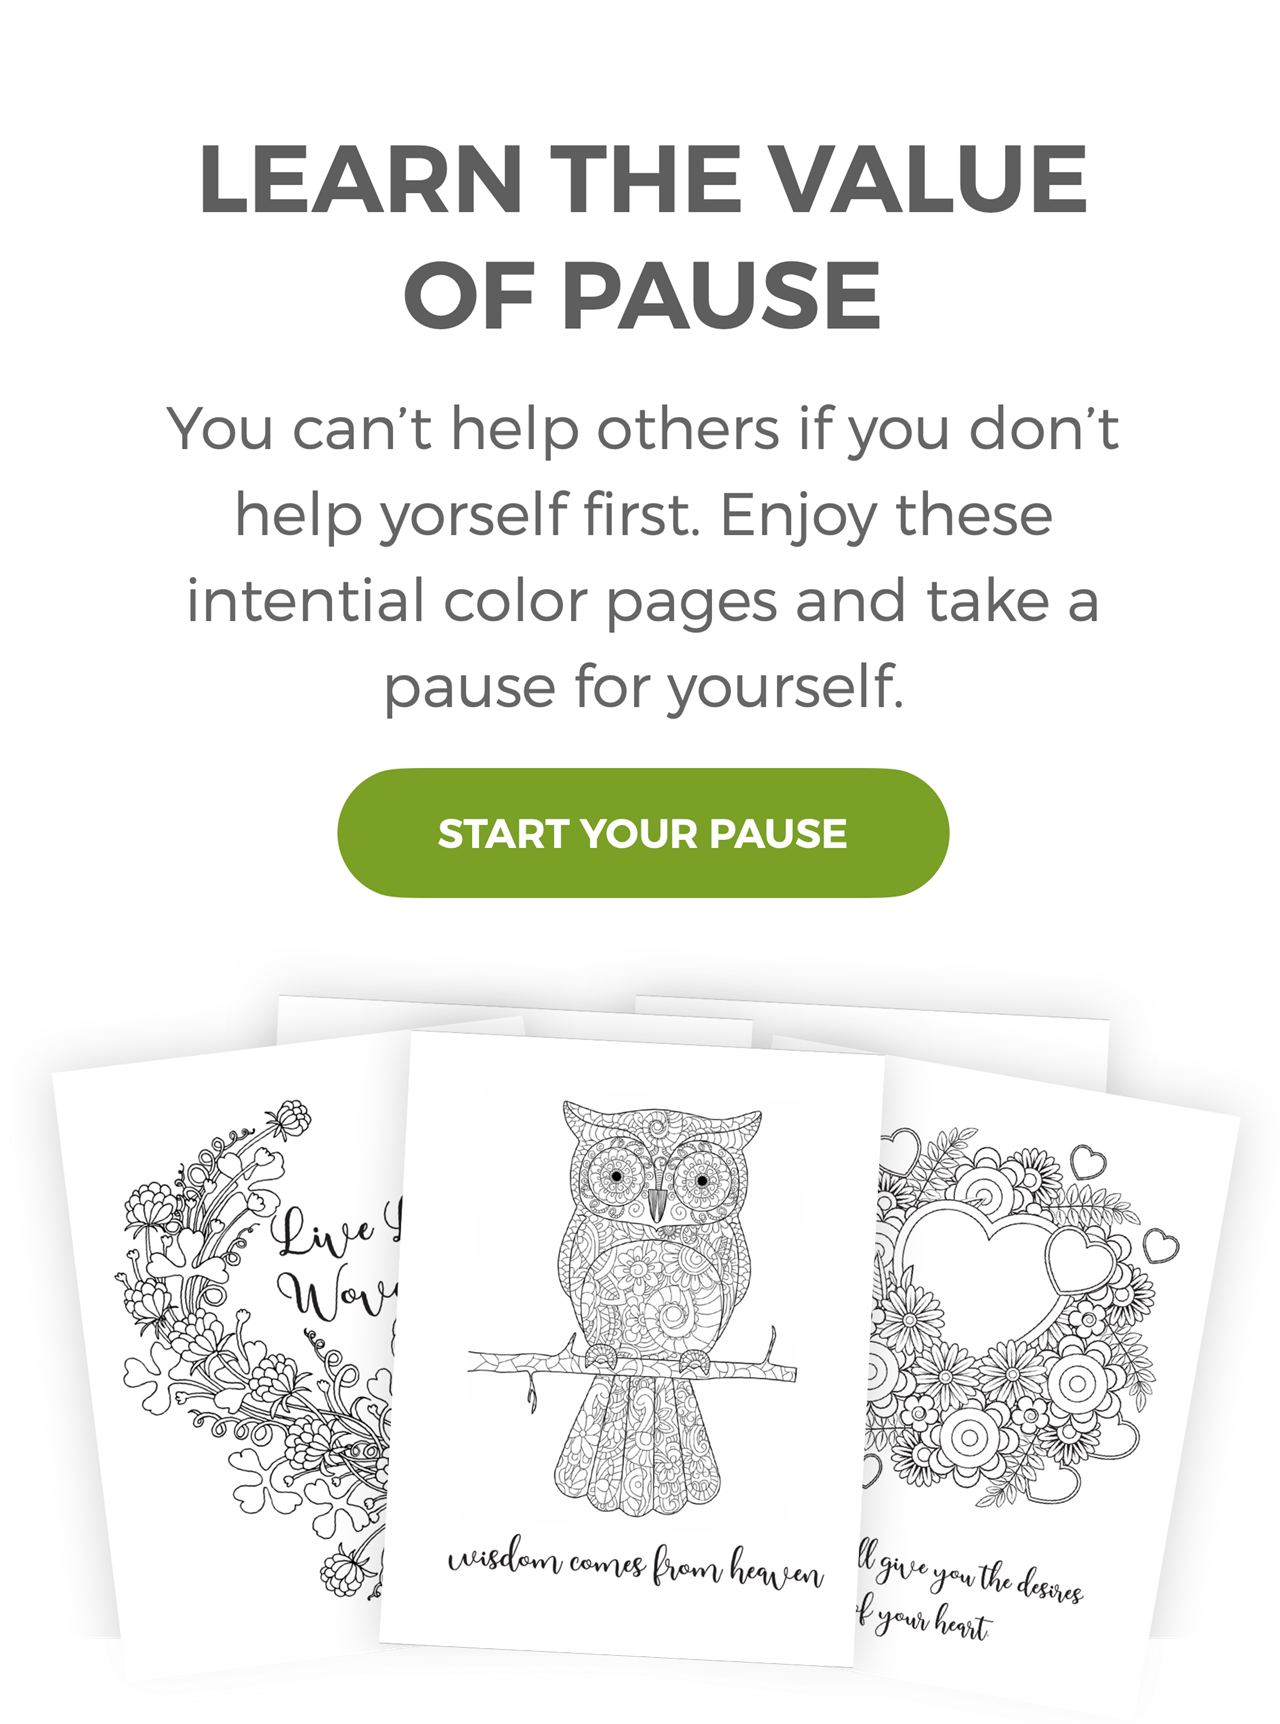 Start Your Pause - Lear the Value of Pause